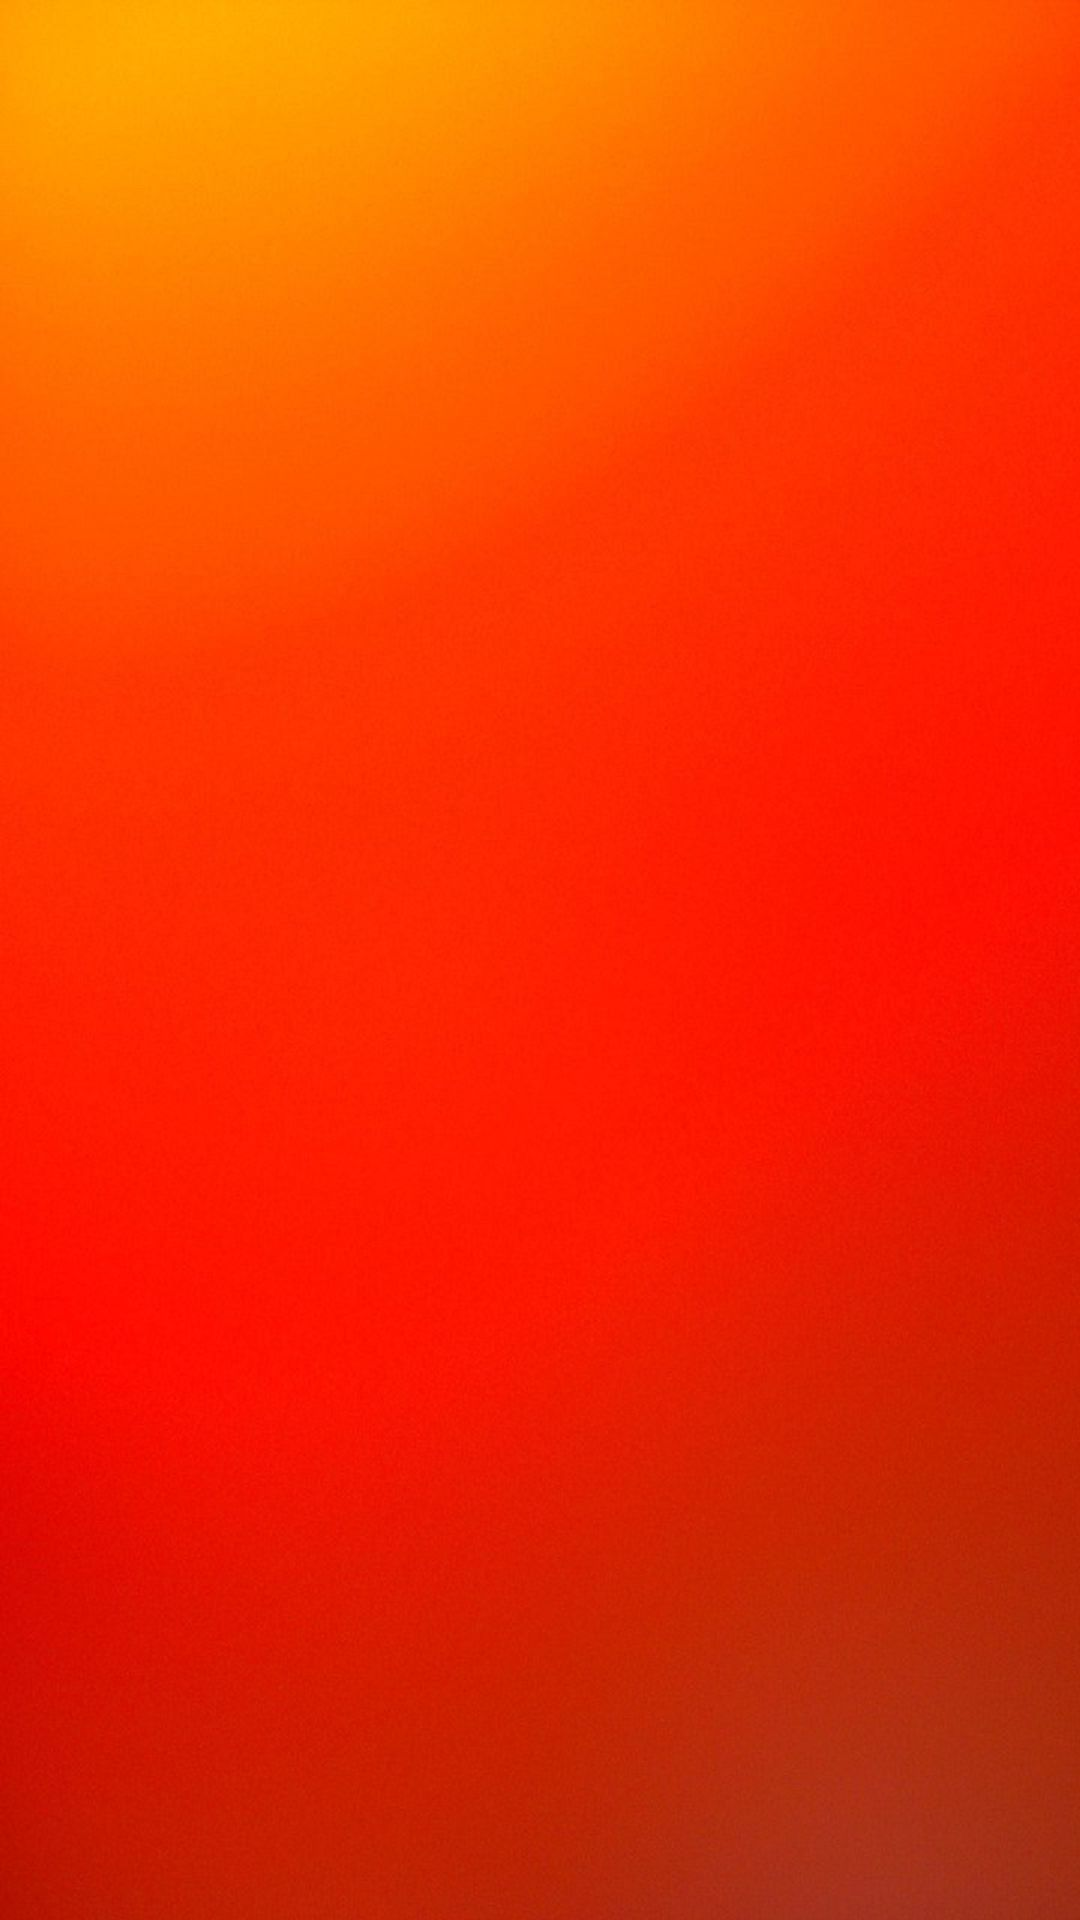 Red And Orange Wallpaper Home Screen In 2020 Orange Wallpaper Android Wallpaper Cellphone Wallpaper